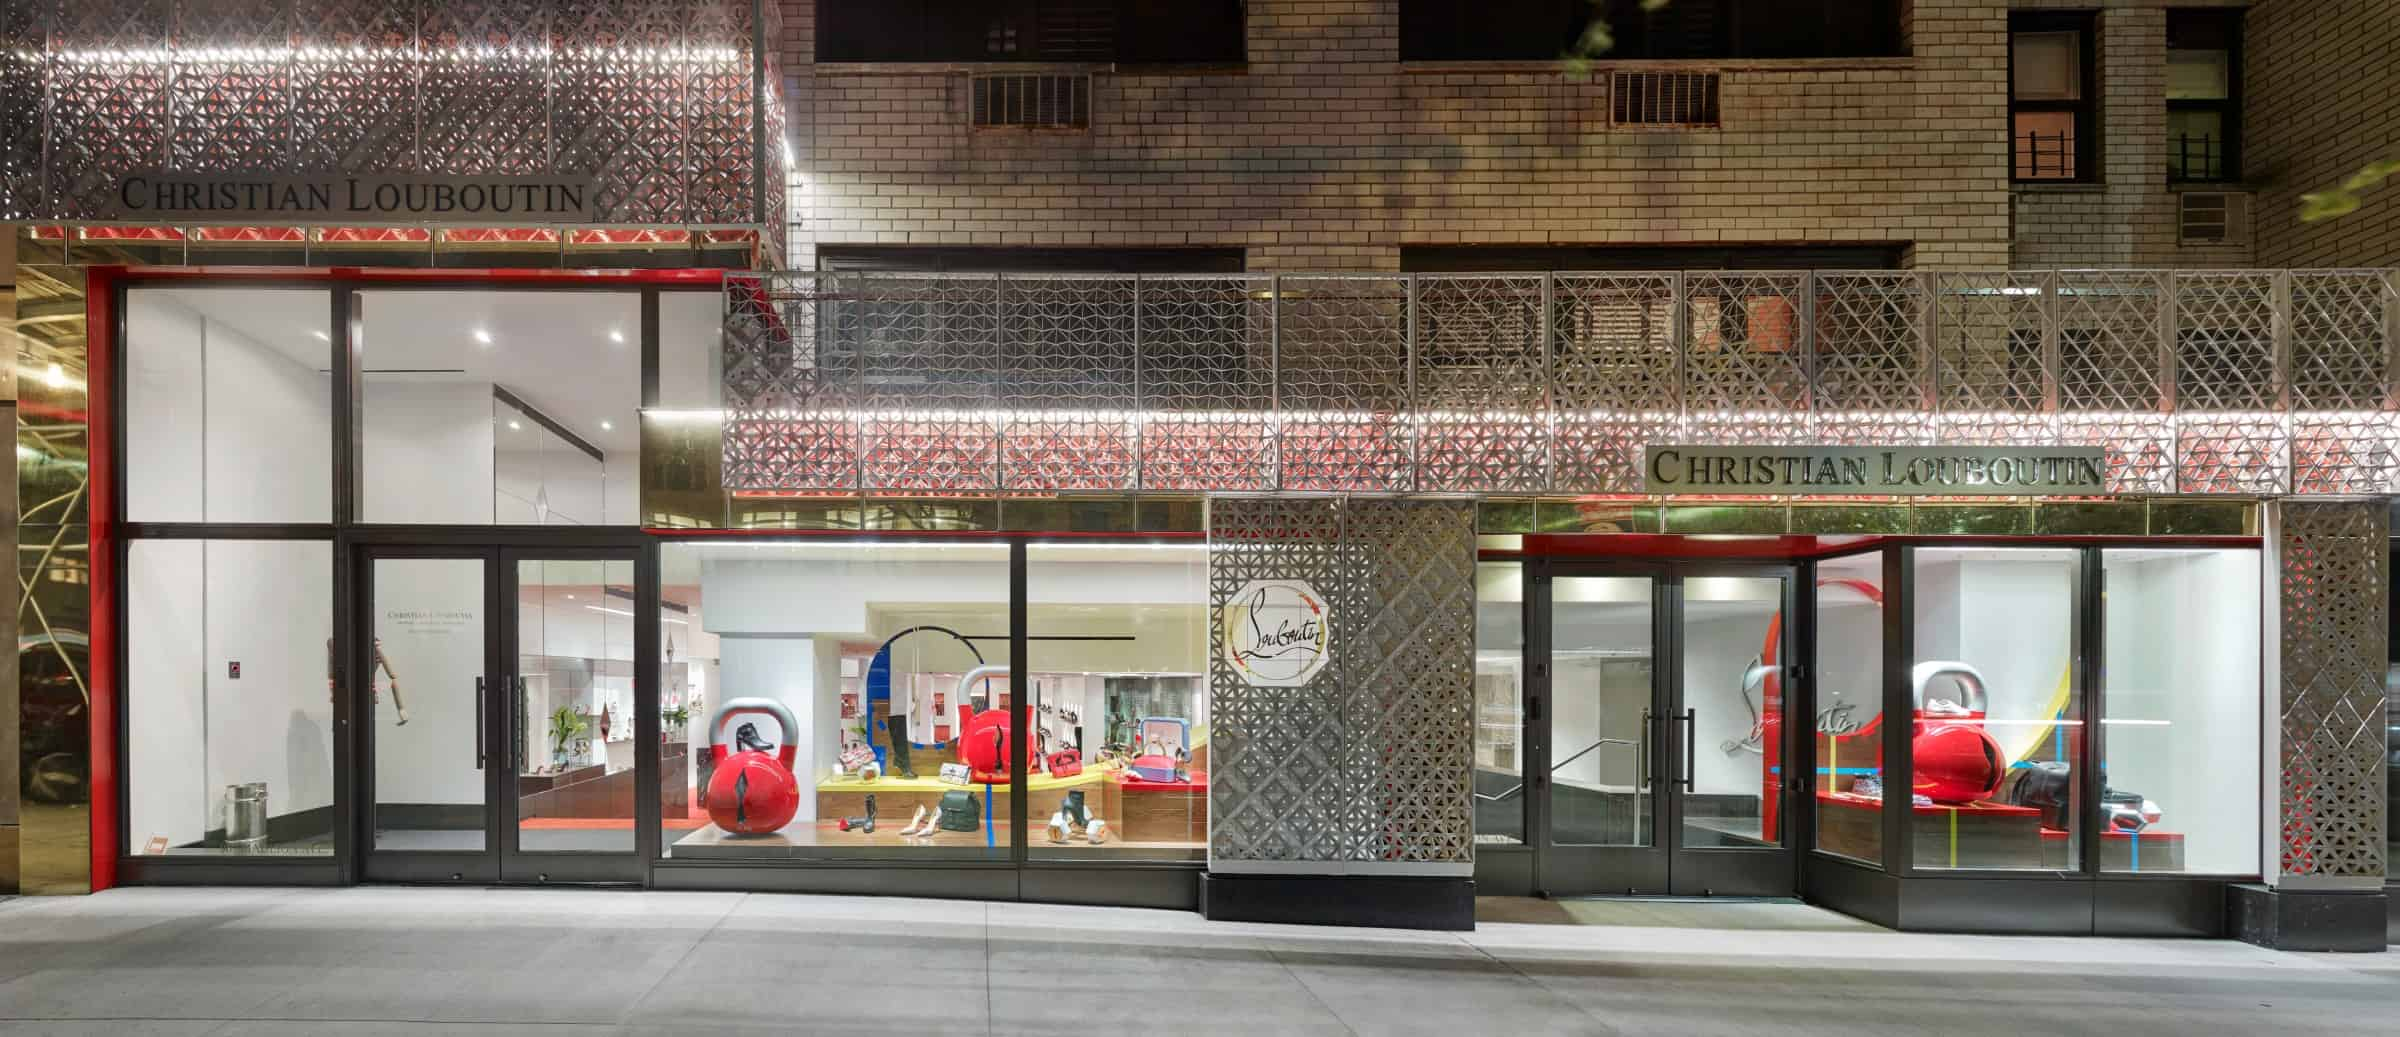 Christian-Louboutin-manhatten-facade-by-metadecor-2